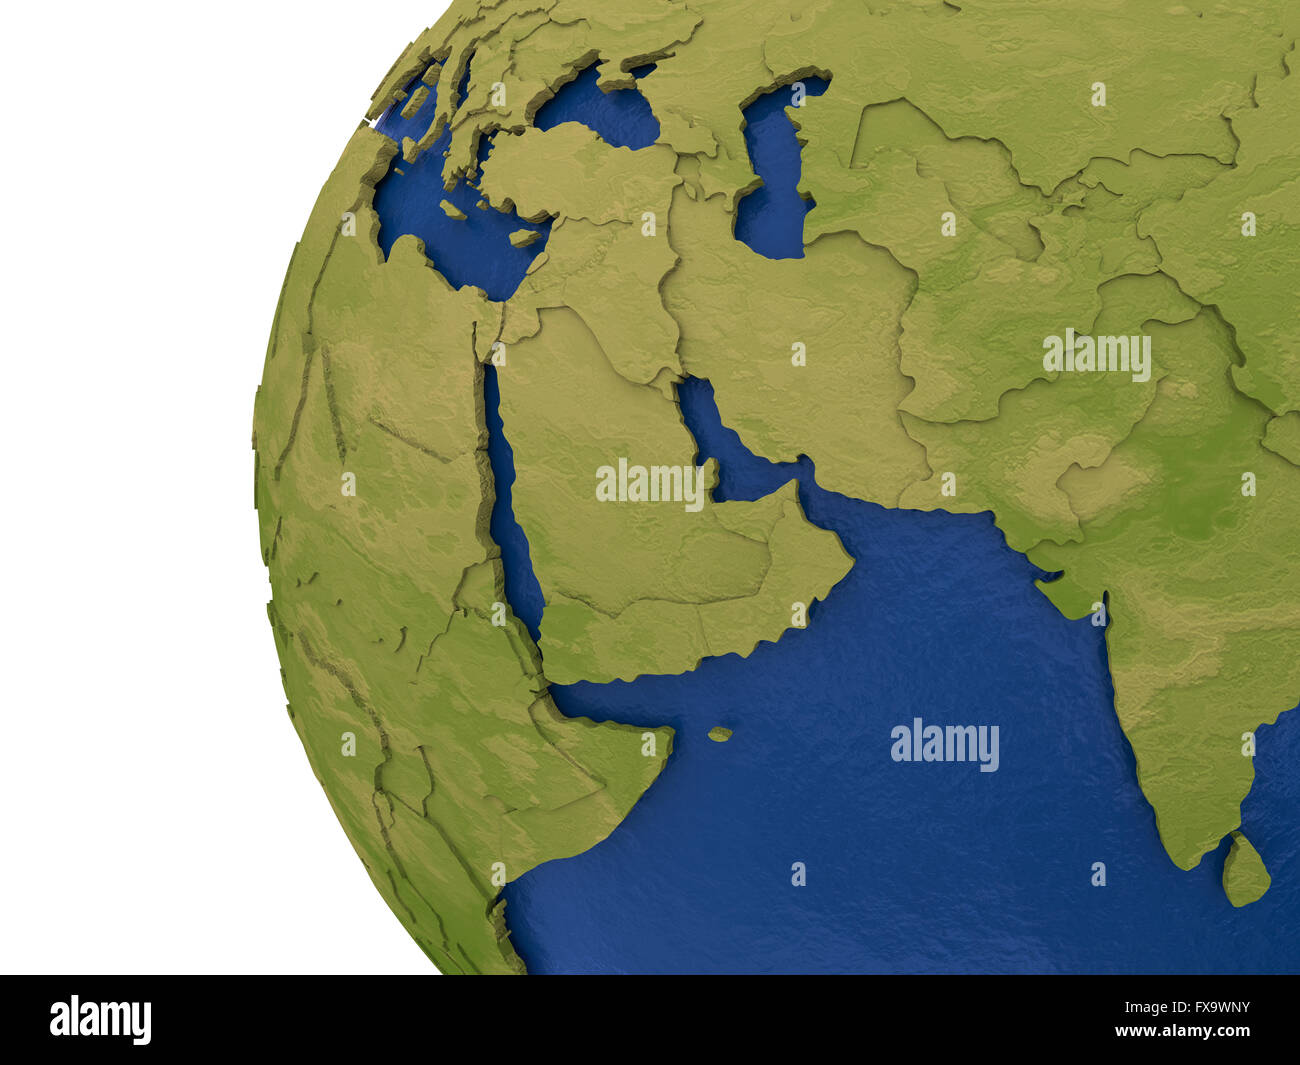 Middle east region on detailed model of planet earth with visible middle east region on detailed model of planet earth with visible country borders on green land and waves on the ocean waters gumiabroncs Choice Image